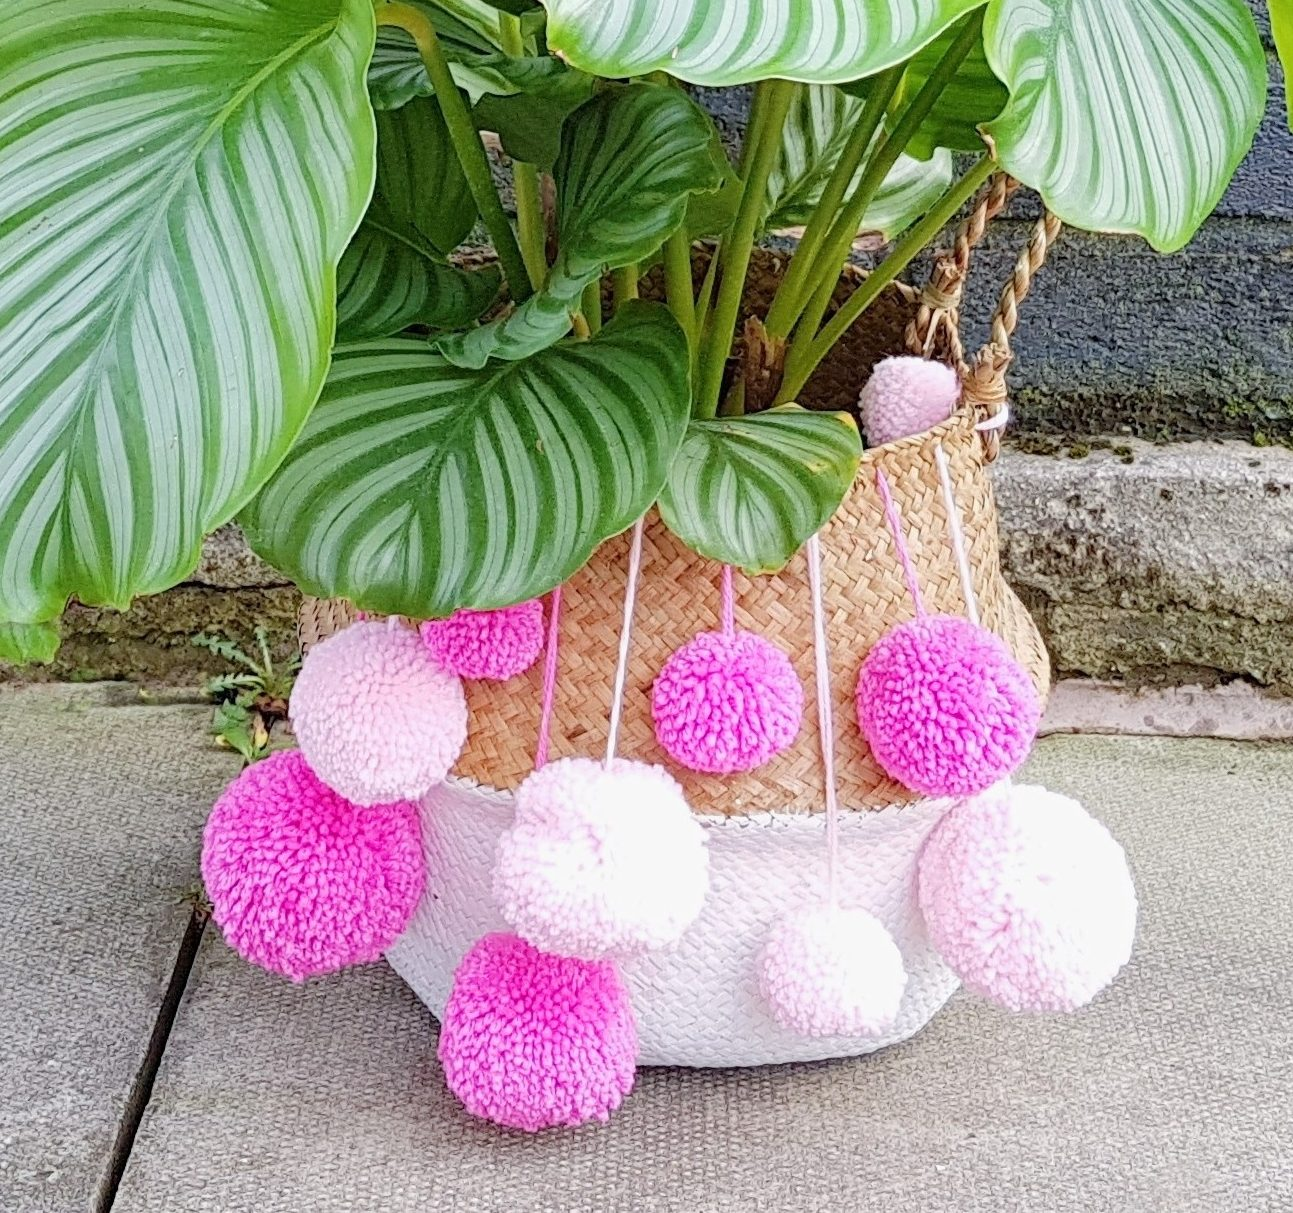 DIY Pom Pom Wicker Baskets | Present Idea